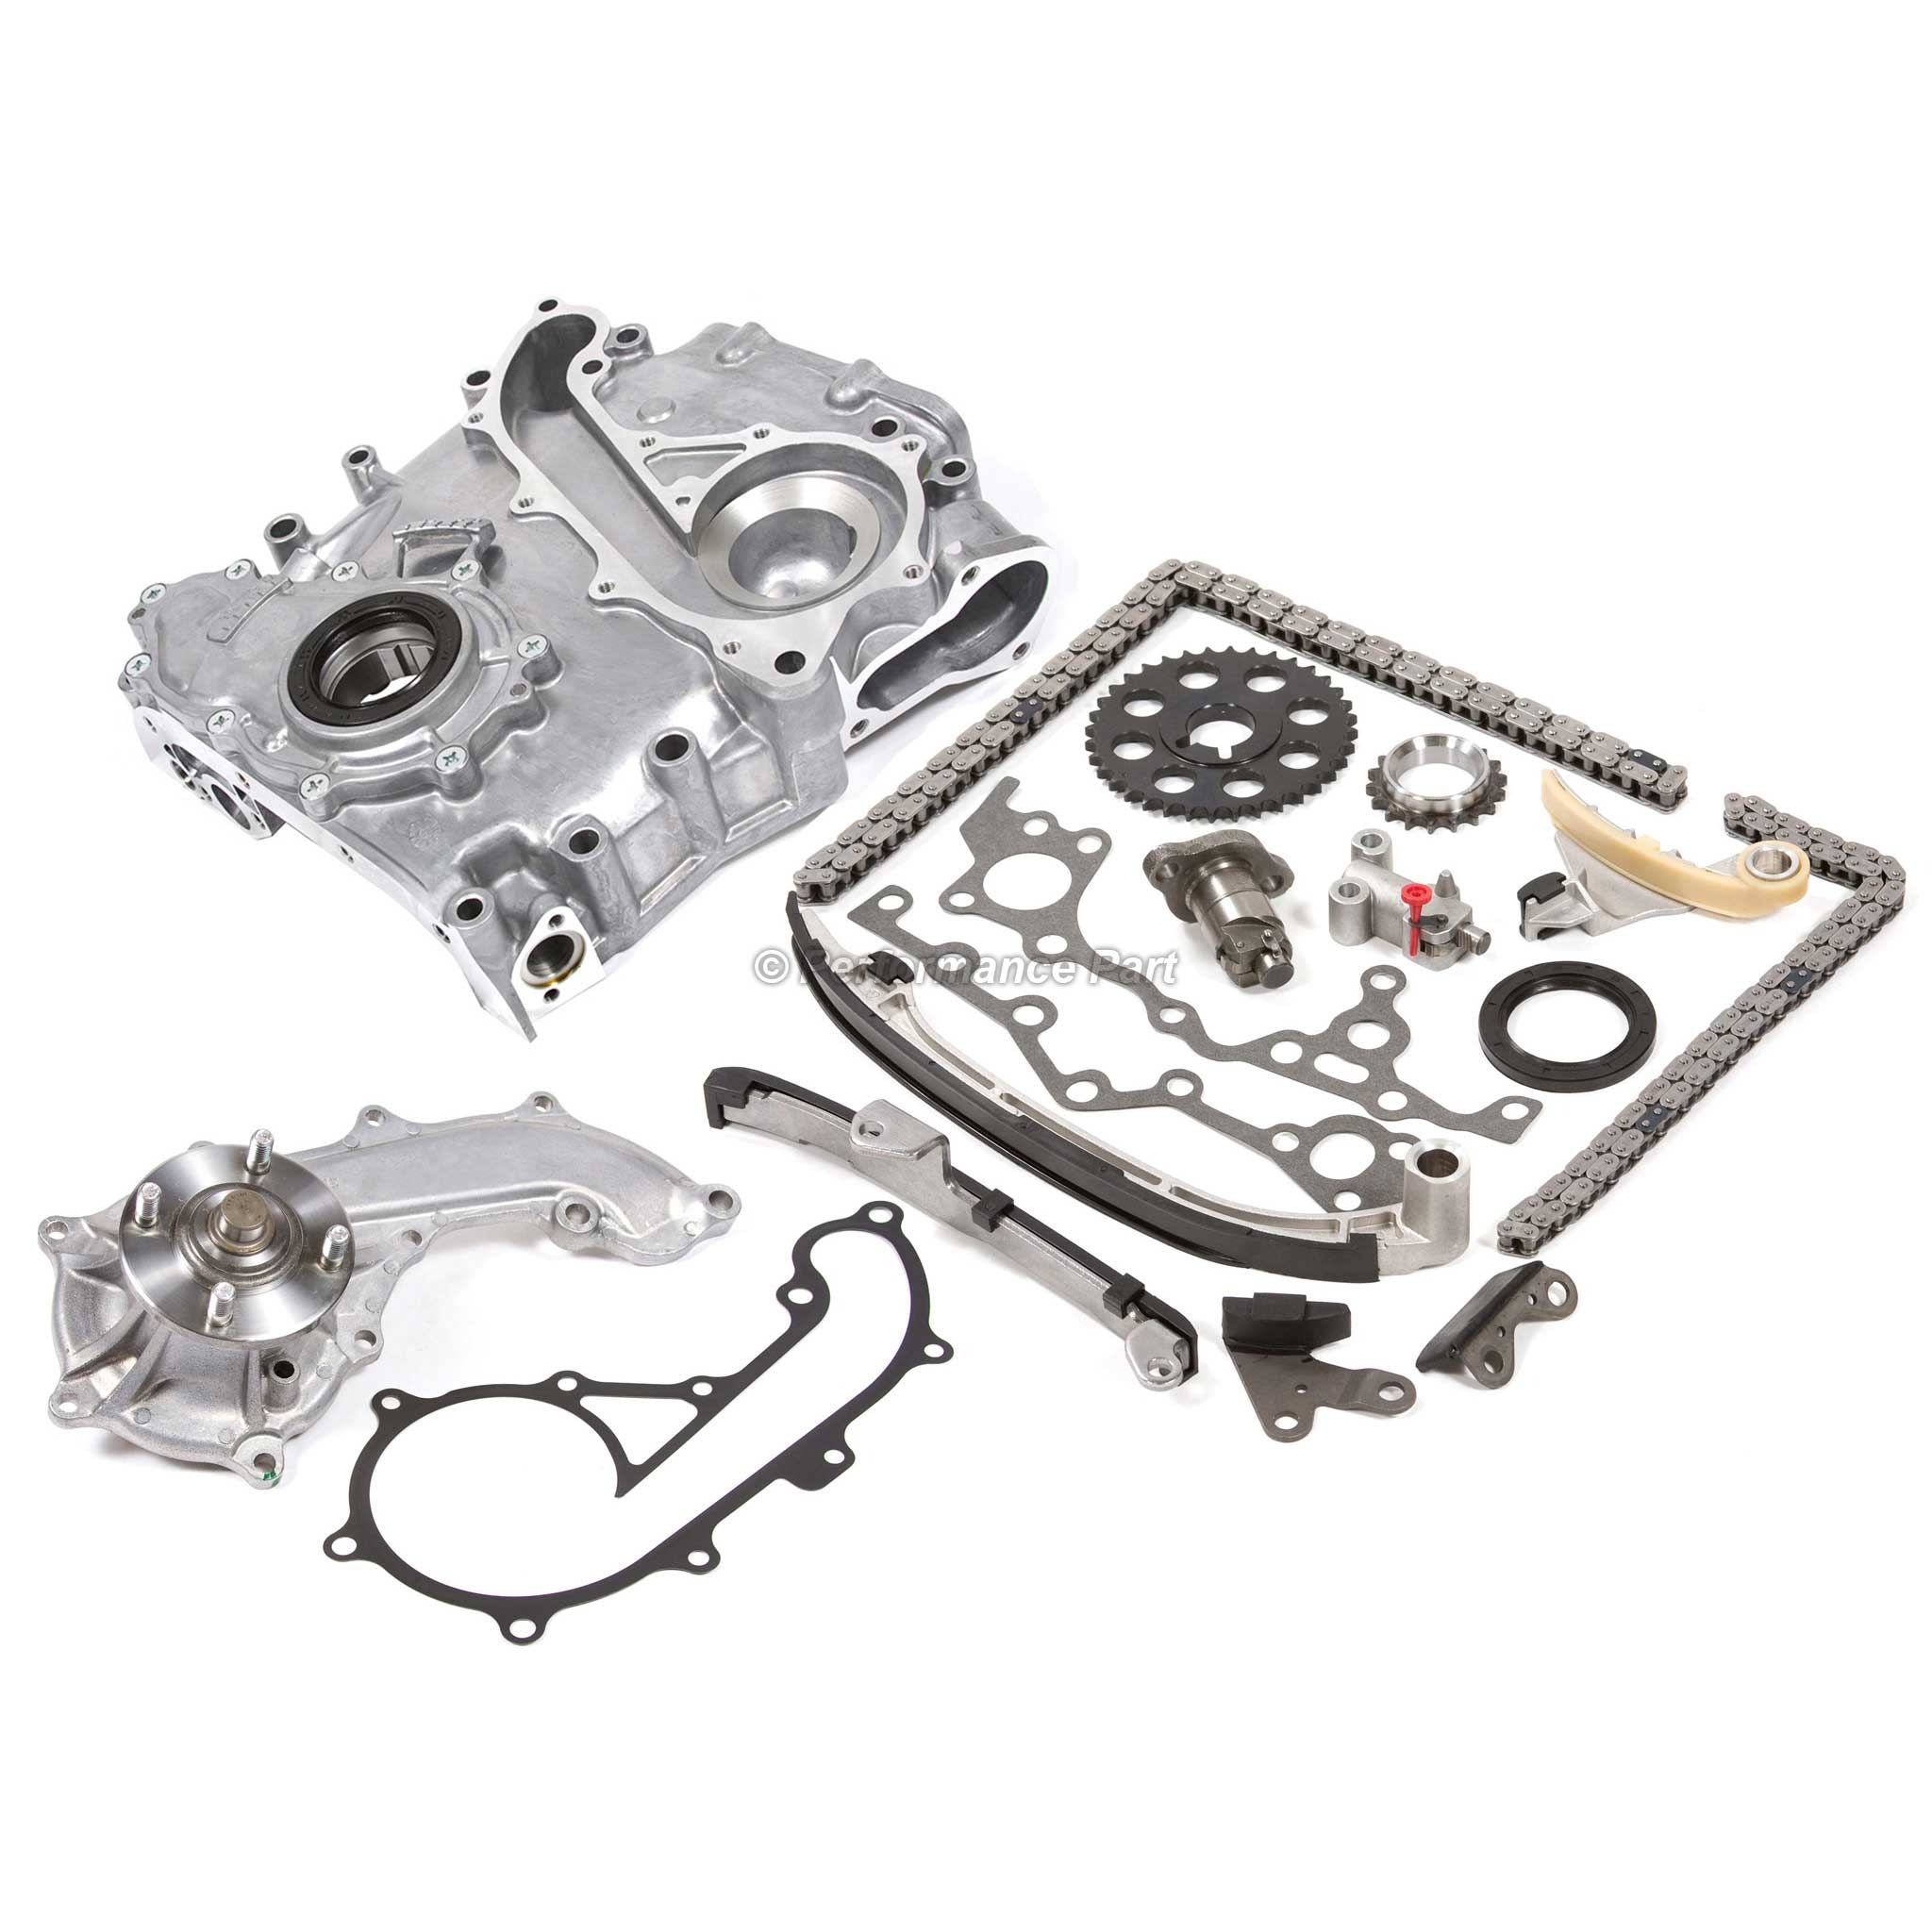 Timing Chain Cover Water Pump Oil Pump Kit Toyota 2 7l 3rzfe T100 Tacoma 4runner